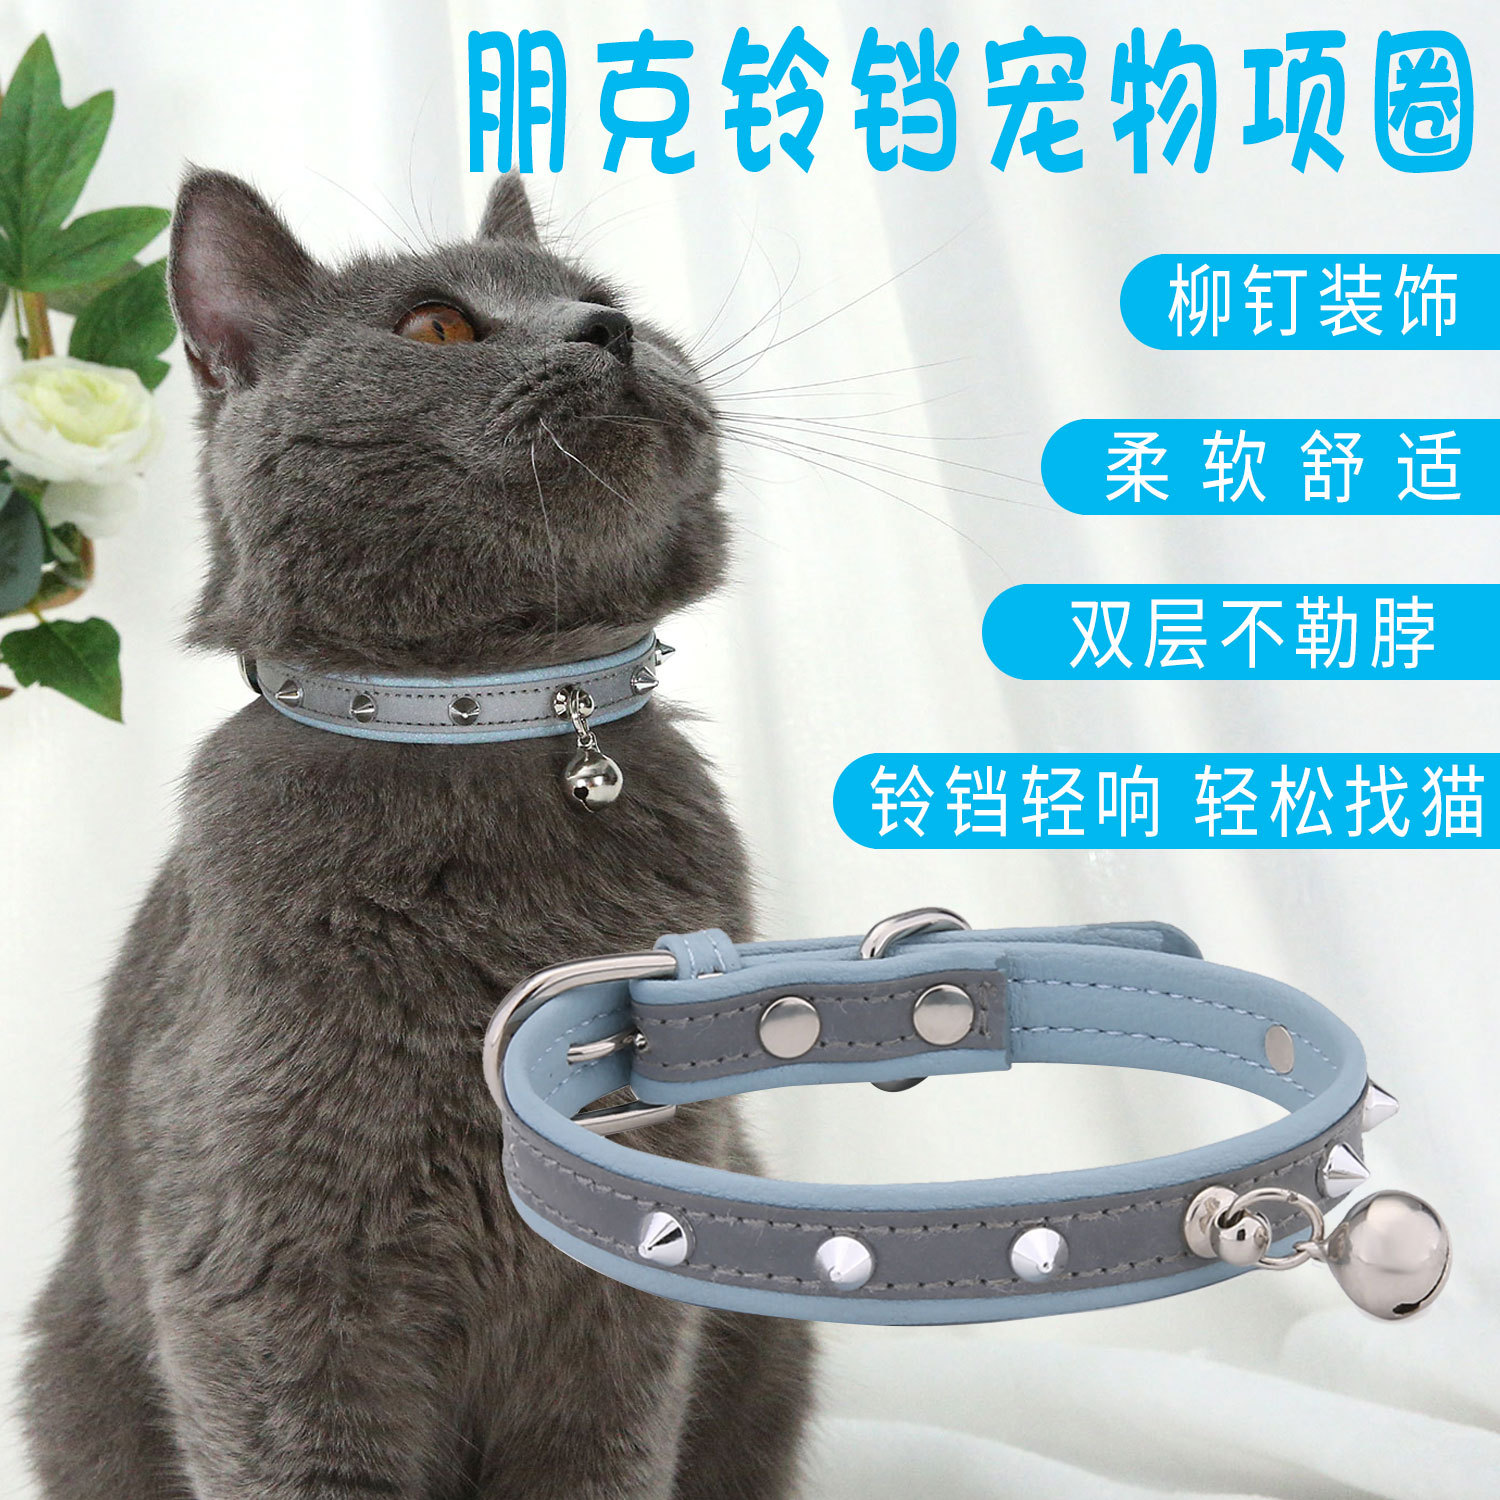 2020 Hot Selling New Style Pet Supplies Night Light Rivet Bell Key Pendant Neck Ring Four Colors Cat Neck Ring Dog Neck Ring